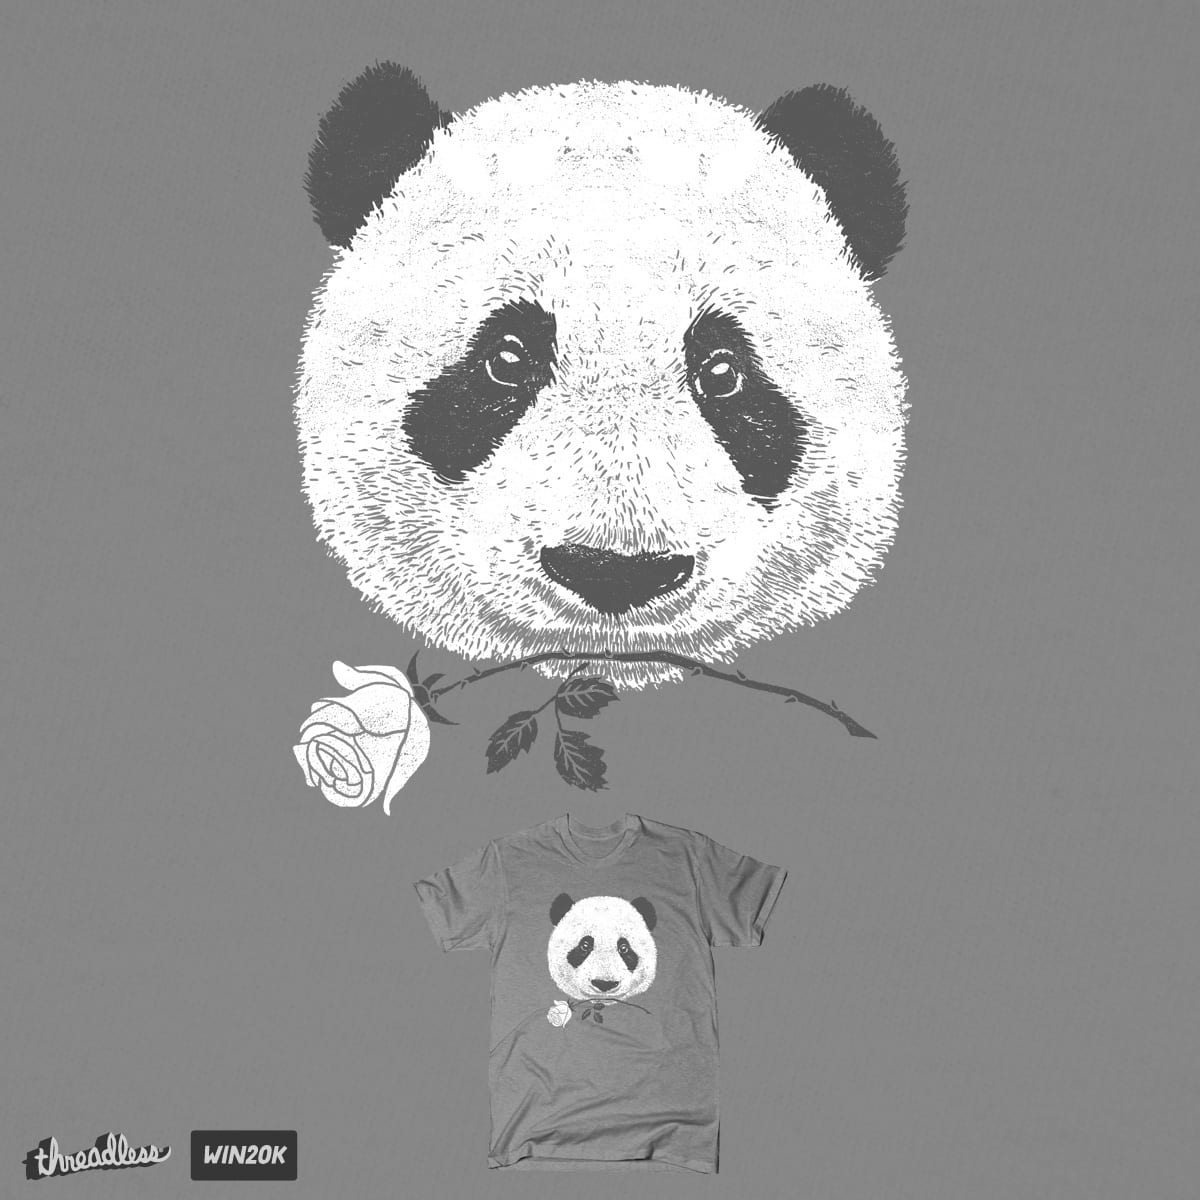 Fall In Love by eikwox on Threadless